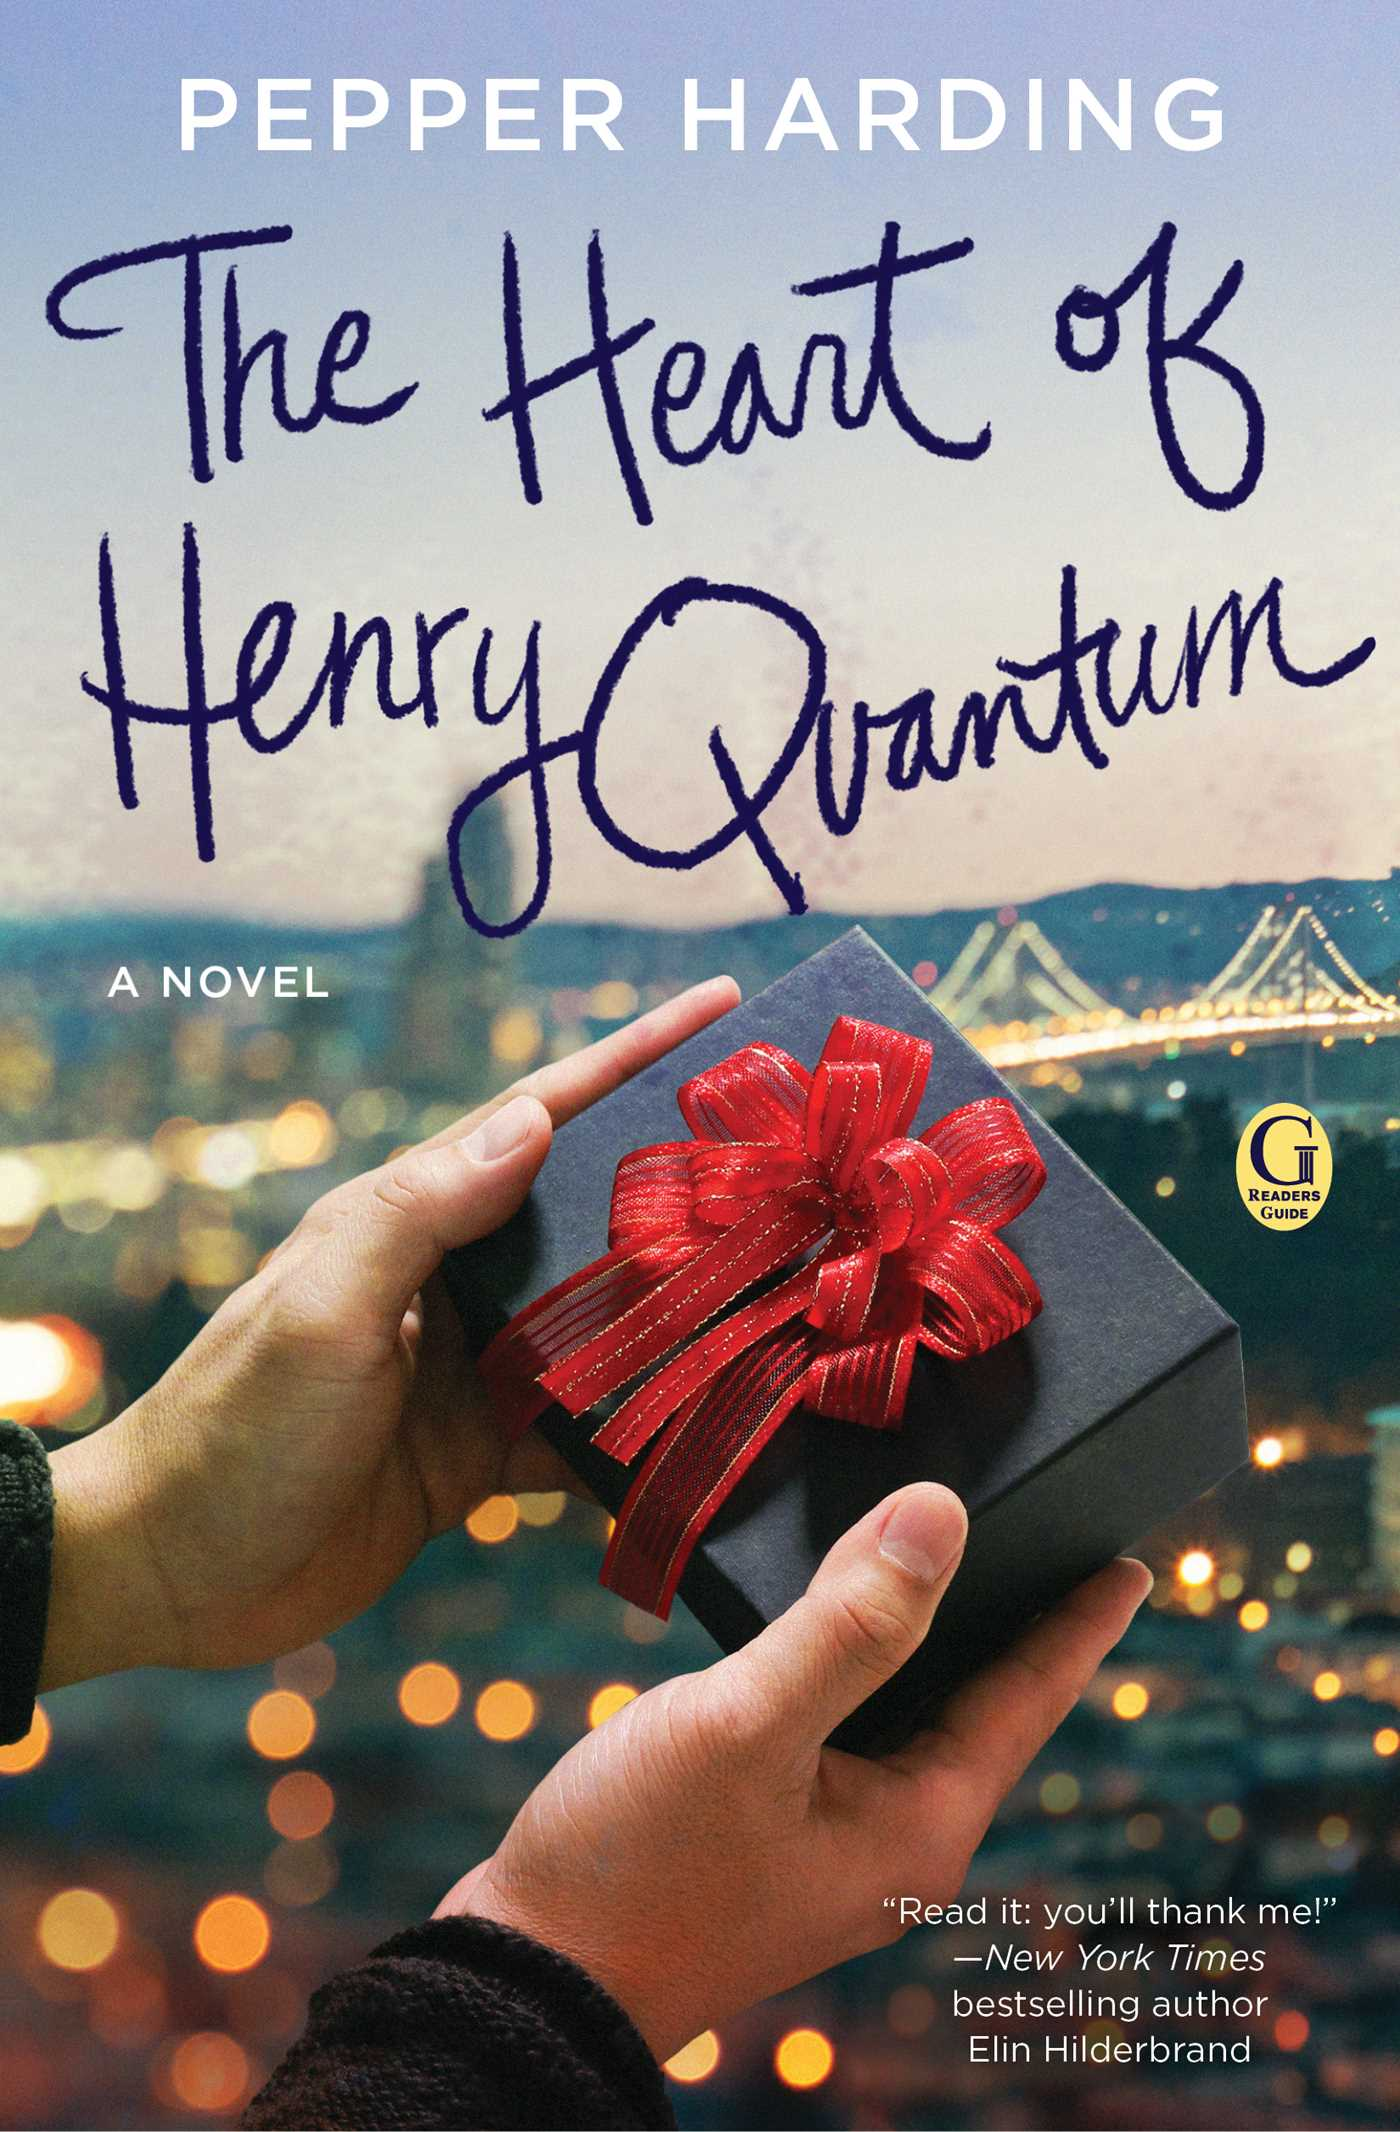 The heart of henry quantum 9781501126819 hr